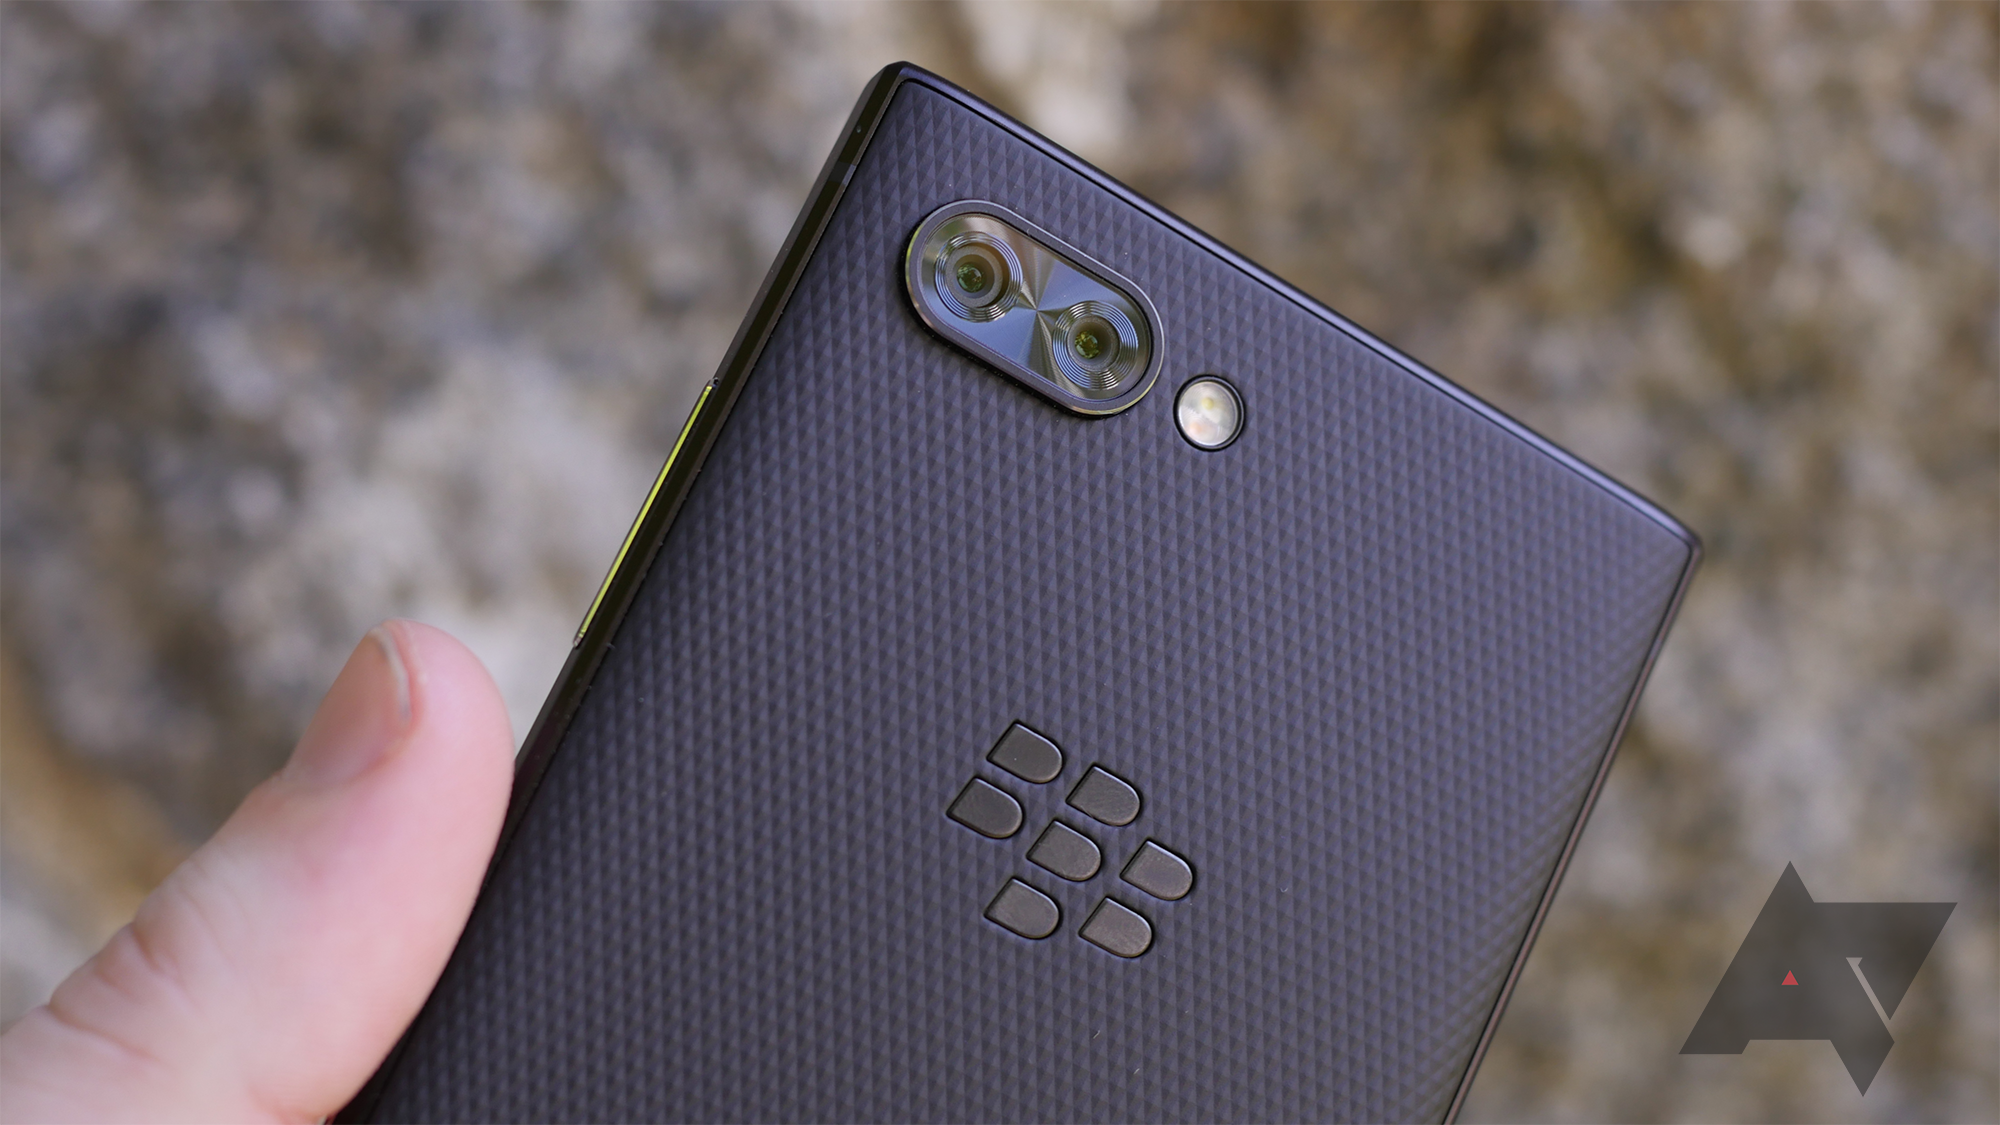 BlackBerry KEY2 review: One of the most unique phones around